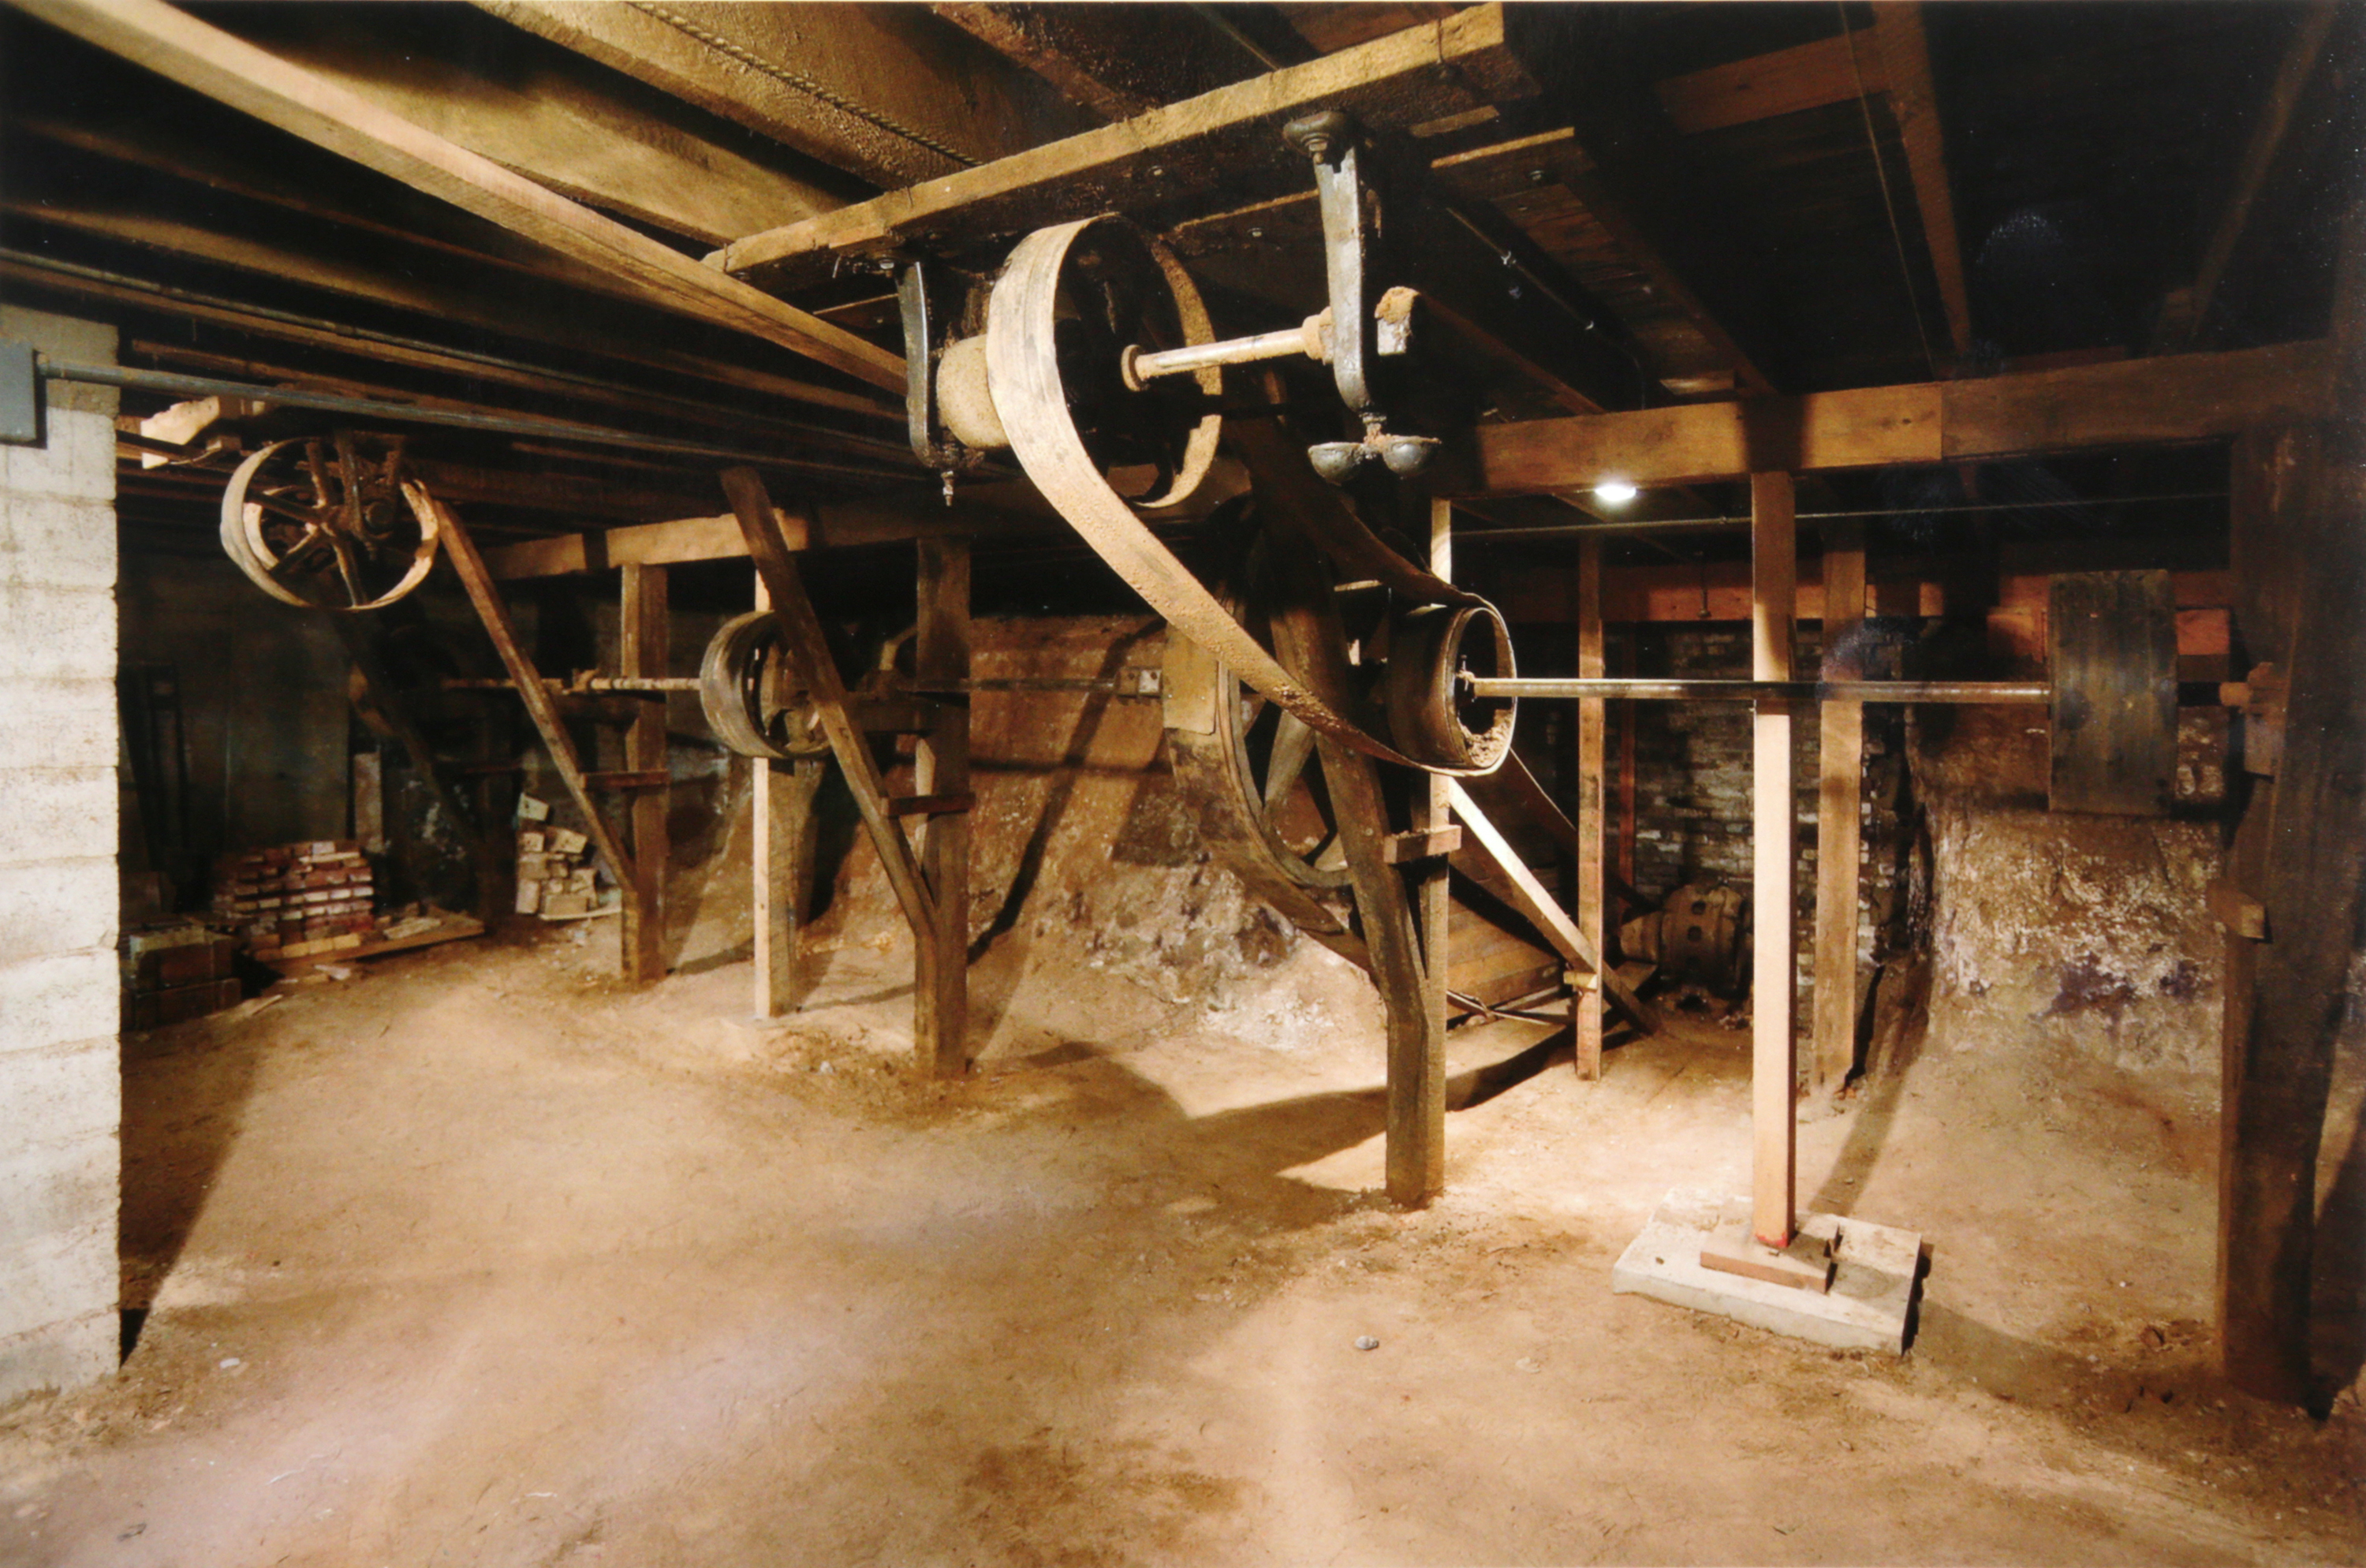 A current photo of the original, river-powered drive shaft from the Johnson Brothers mill. This historic relic is now beneath the floor of the Idaho Falls Cliff Street shop.